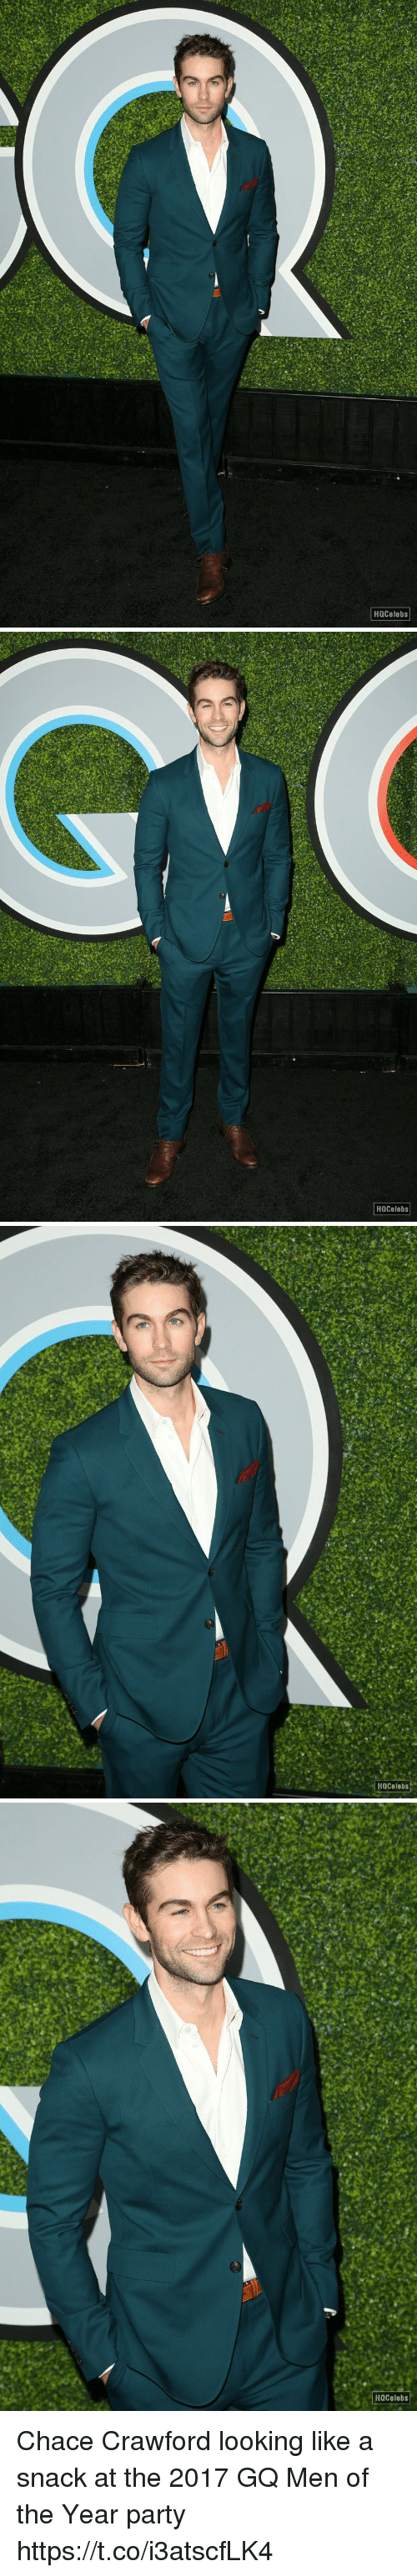 Memes, Party, and Chace Crawford: HQcelebs   Hocelebs   HQCelebs   HQCelebs Chace Crawford looking like a snack at the 2017 GQ Men of the Year party https://t.co/i3atscfLK4